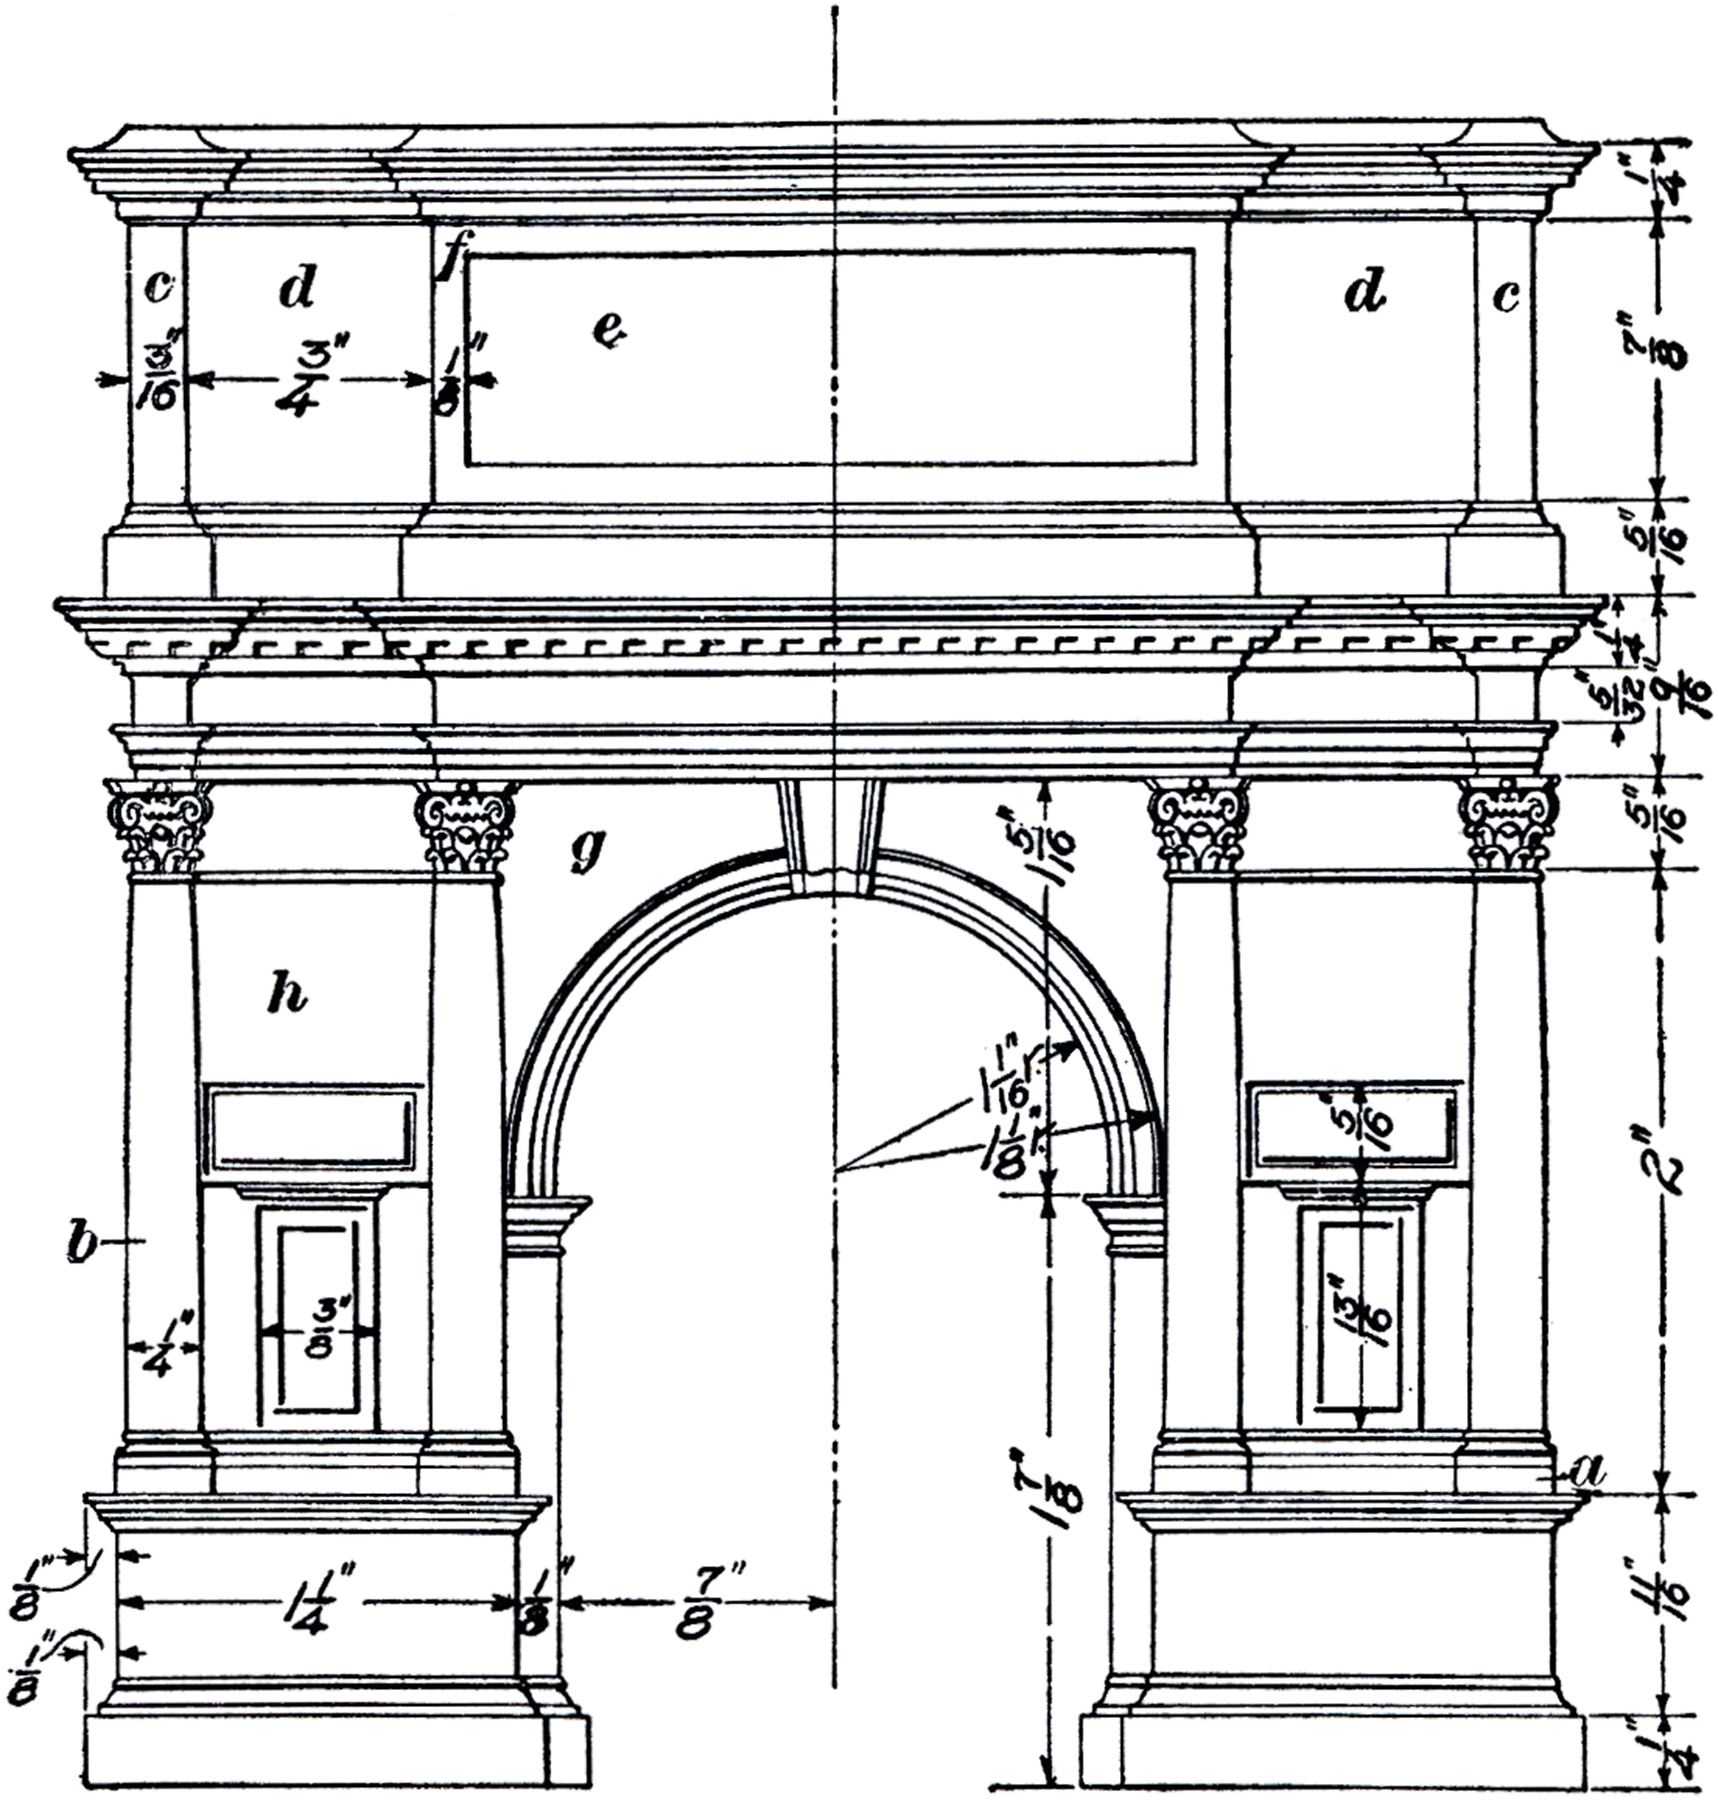 Architectural Arch Diagram Image